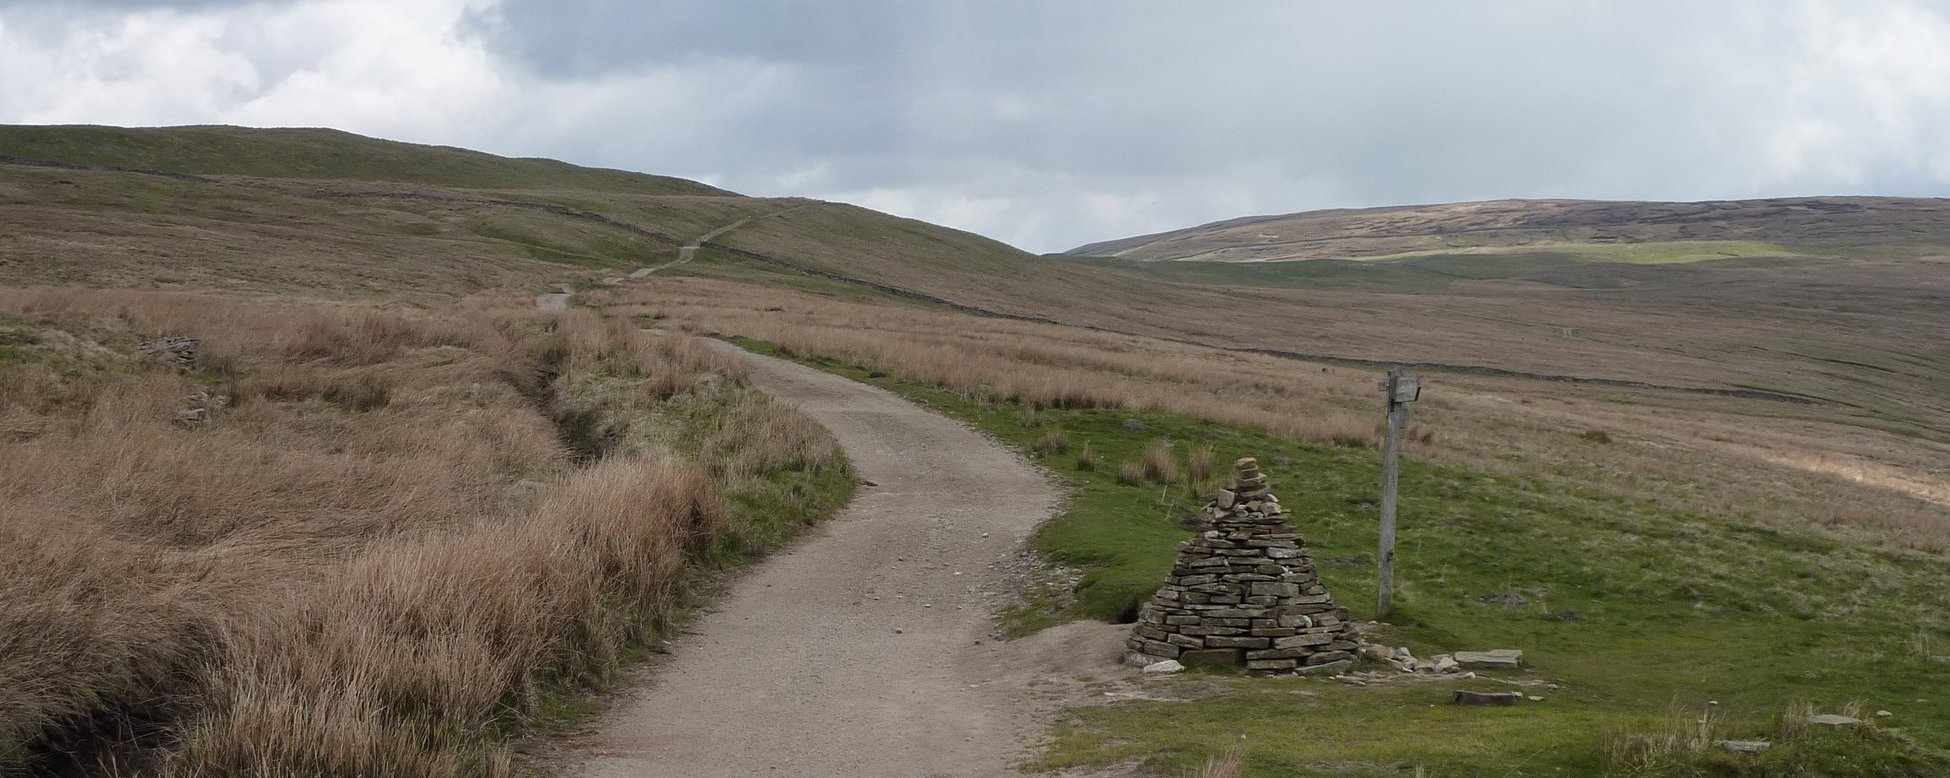 The Dales Way junction cairn